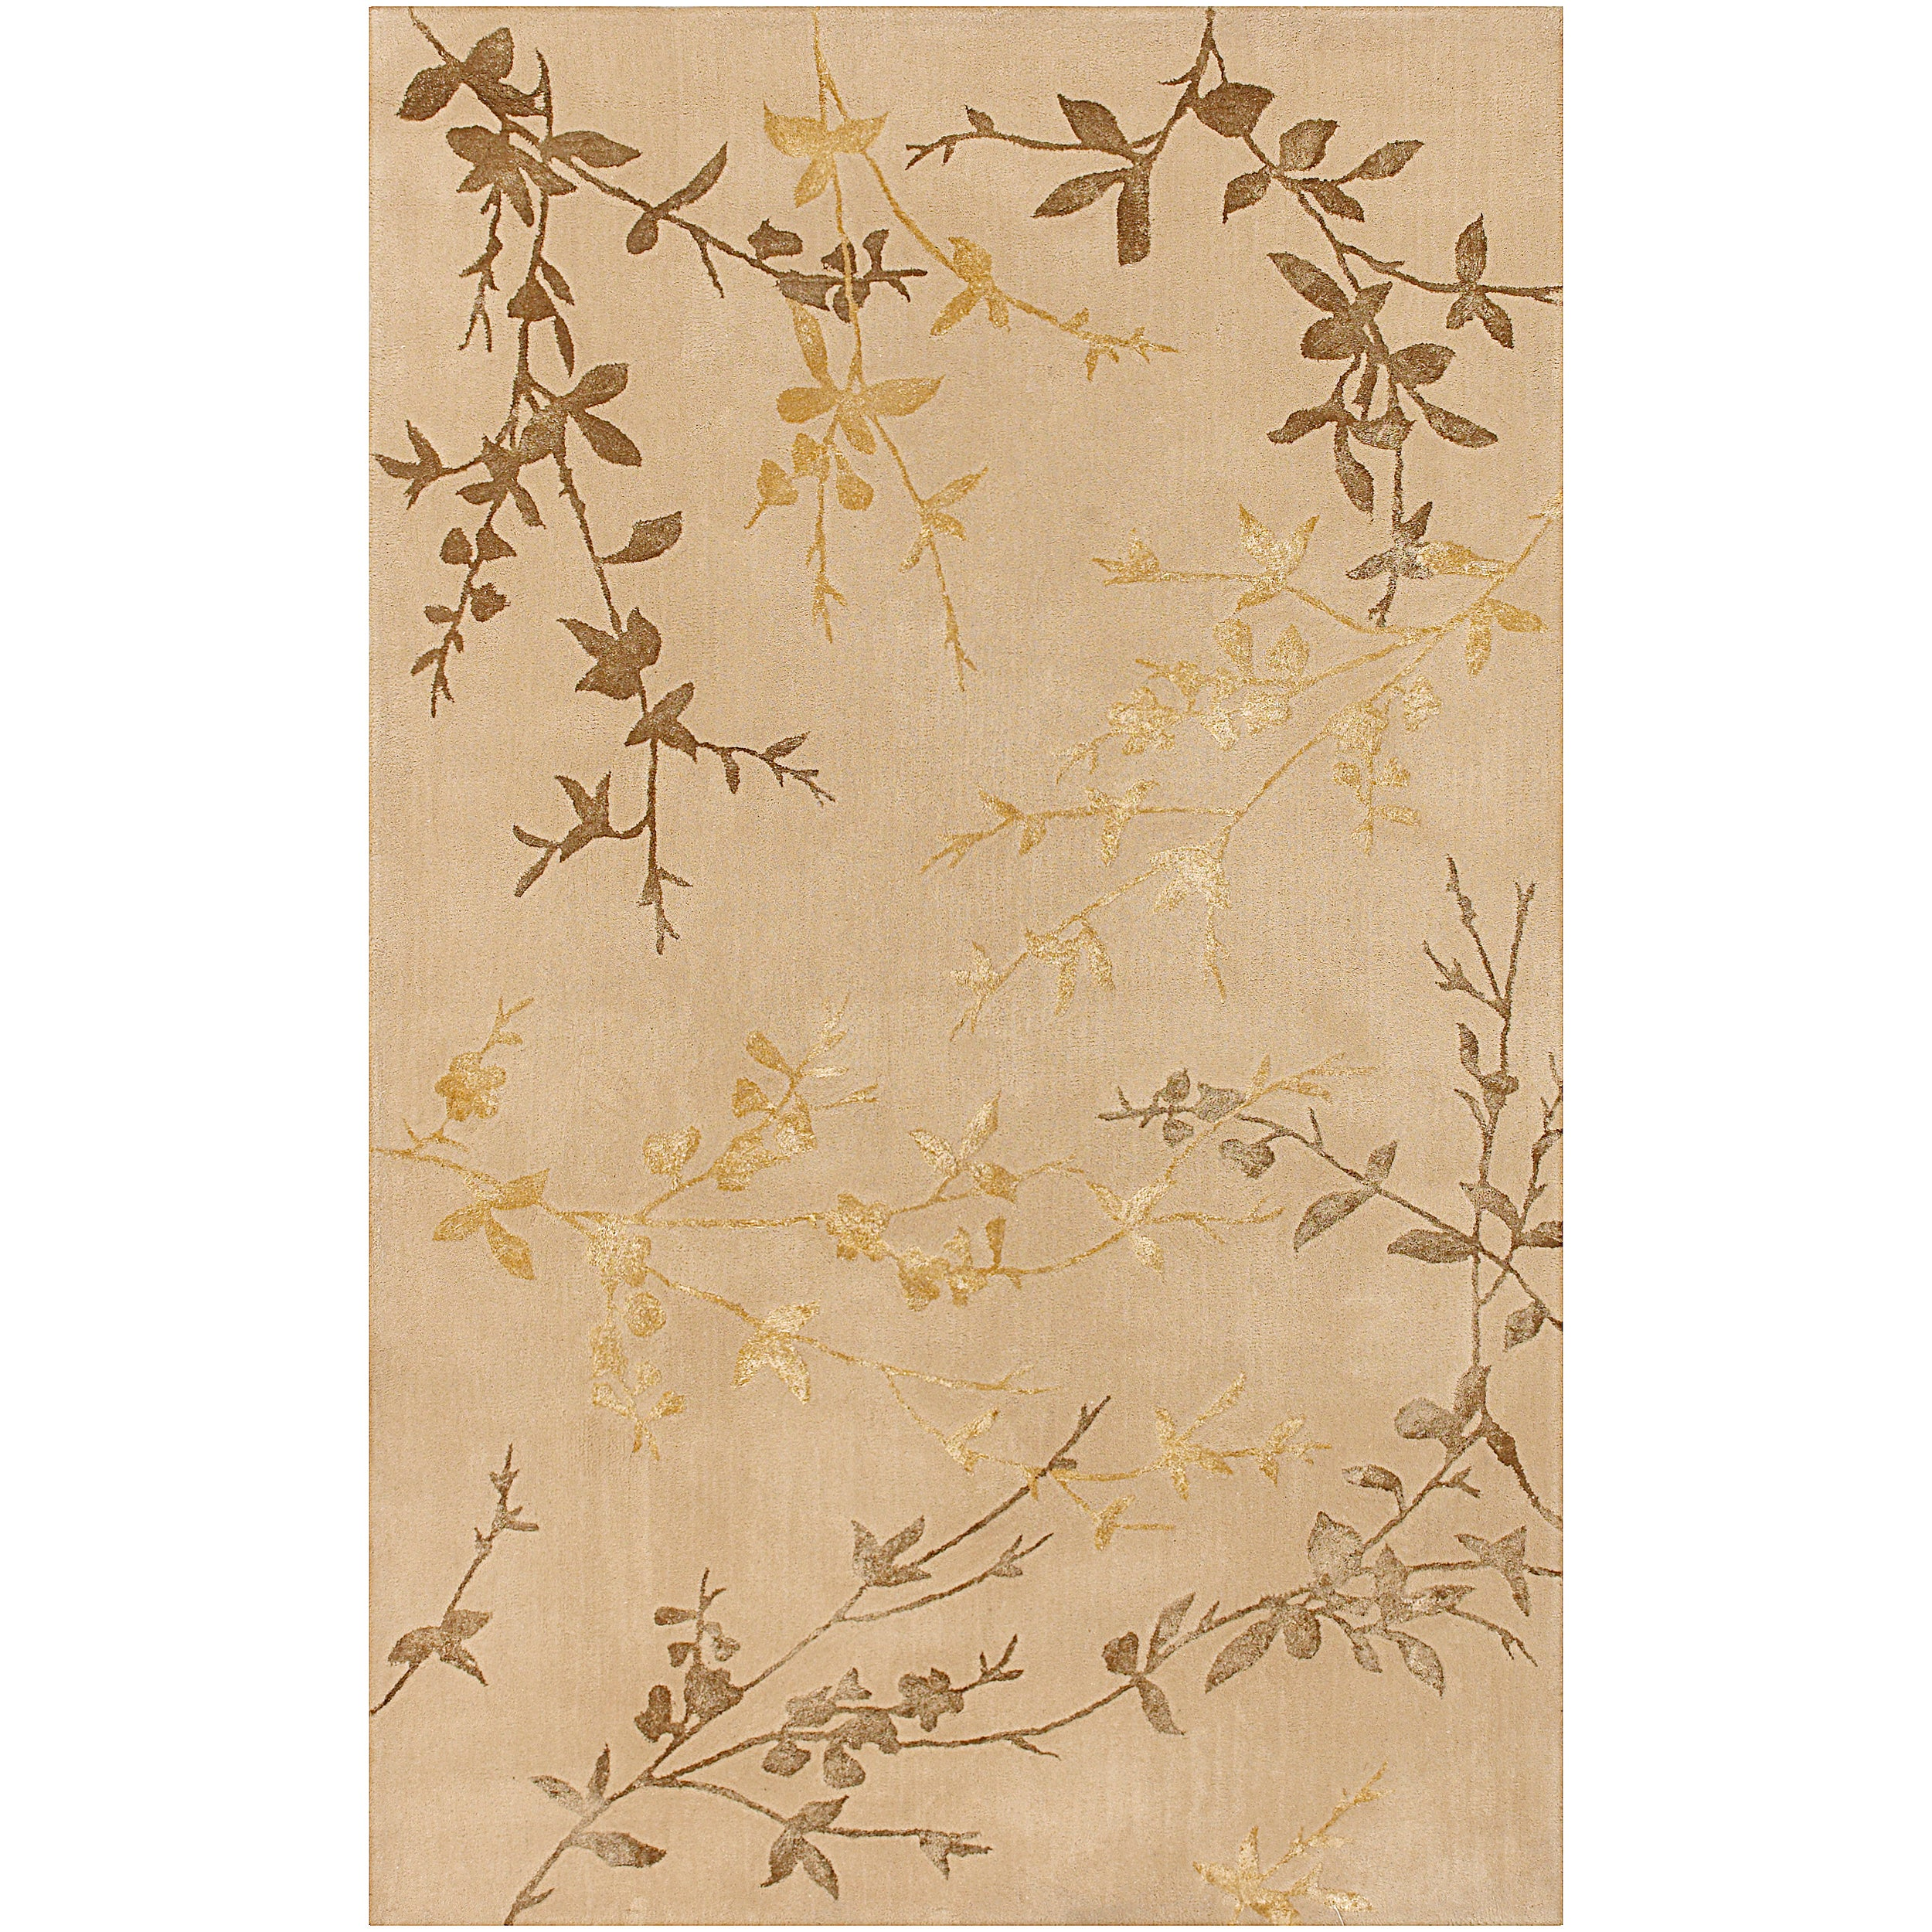 Hand-tufted Beige Tame Wool/ Viscose Area Rug (9' x 13') - 9' x 13'